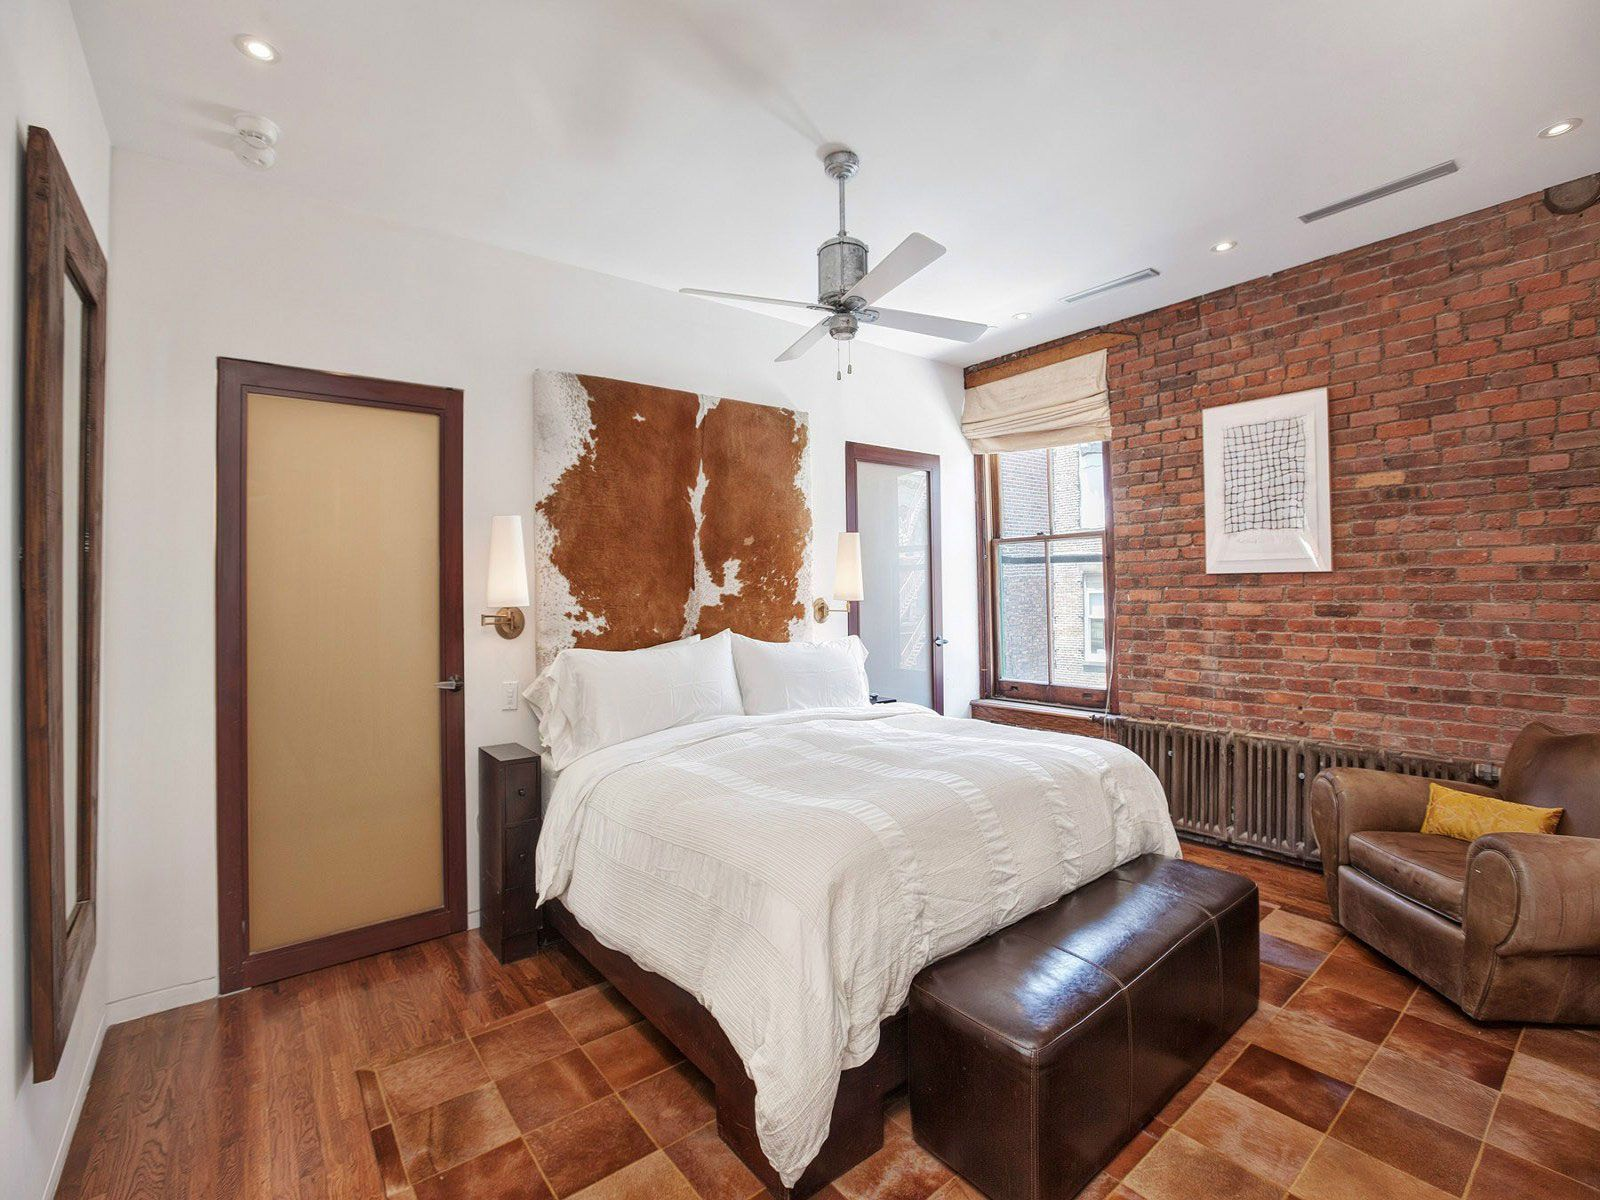 Ultimate Soho Exposed Brick And Wood Beams Loft On Prince Street In New York 07